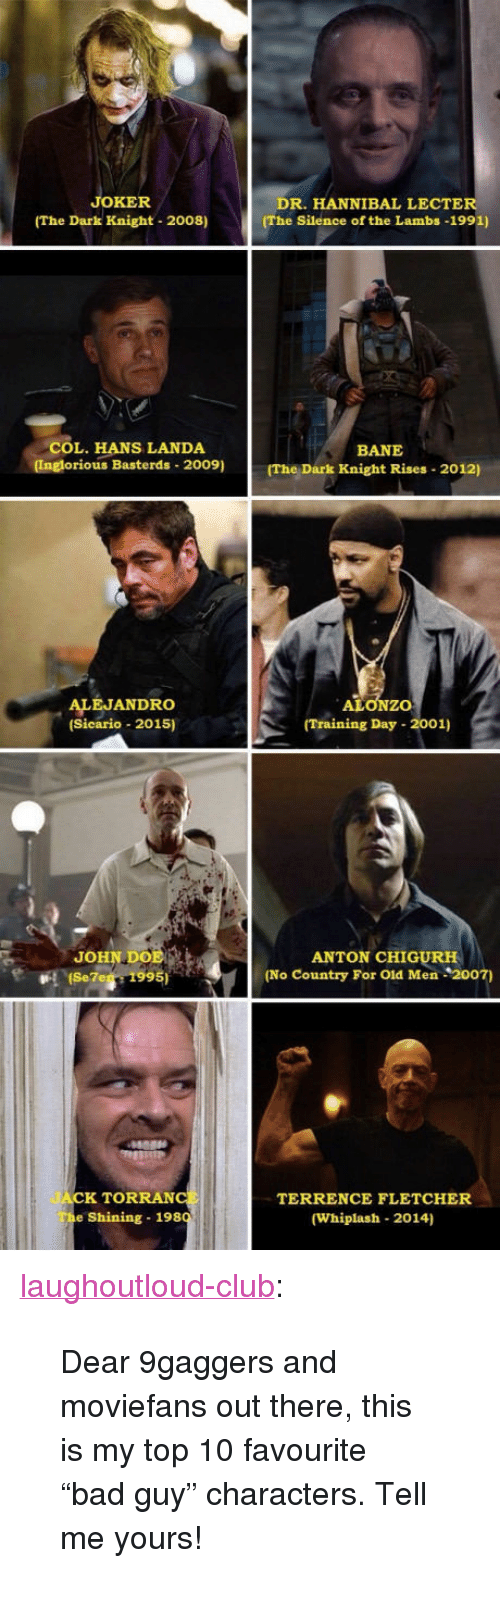 """Bane, Club, and Doe: JOKER  (The Dark Knight 2008)  DR. HANNIBAL LECTER  (The Silence of the Lambs -1991)  COL. HANS LANDA  (Inglorious Basterds 2009)  BANE  (The Dark Knight Rises 2012)  ALEJANDRO  (Sicario 2015)  ALONZO  Training Day - 2001)  JOHN DOE  (Se7e 1995)  ANTON CHIGURH  (No Country For Old Men 2007)  JACK TORRANCt  e Shining 198  TERRENCE FLETCHER  (Whiplash 2014) <p><a href=""""http://laughoutloud-club.tumblr.com/post/160315891298/dear-9gaggers-and-moviefans-out-there-this-is-my"""" class=""""tumblr_blog"""">laughoutloud-club</a>:</p>  <blockquote><p>Dear 9gaggers and moviefans out there, this is my top 10 favourite """"bad guy"""" characters. Tell me yours!</p></blockquote>"""